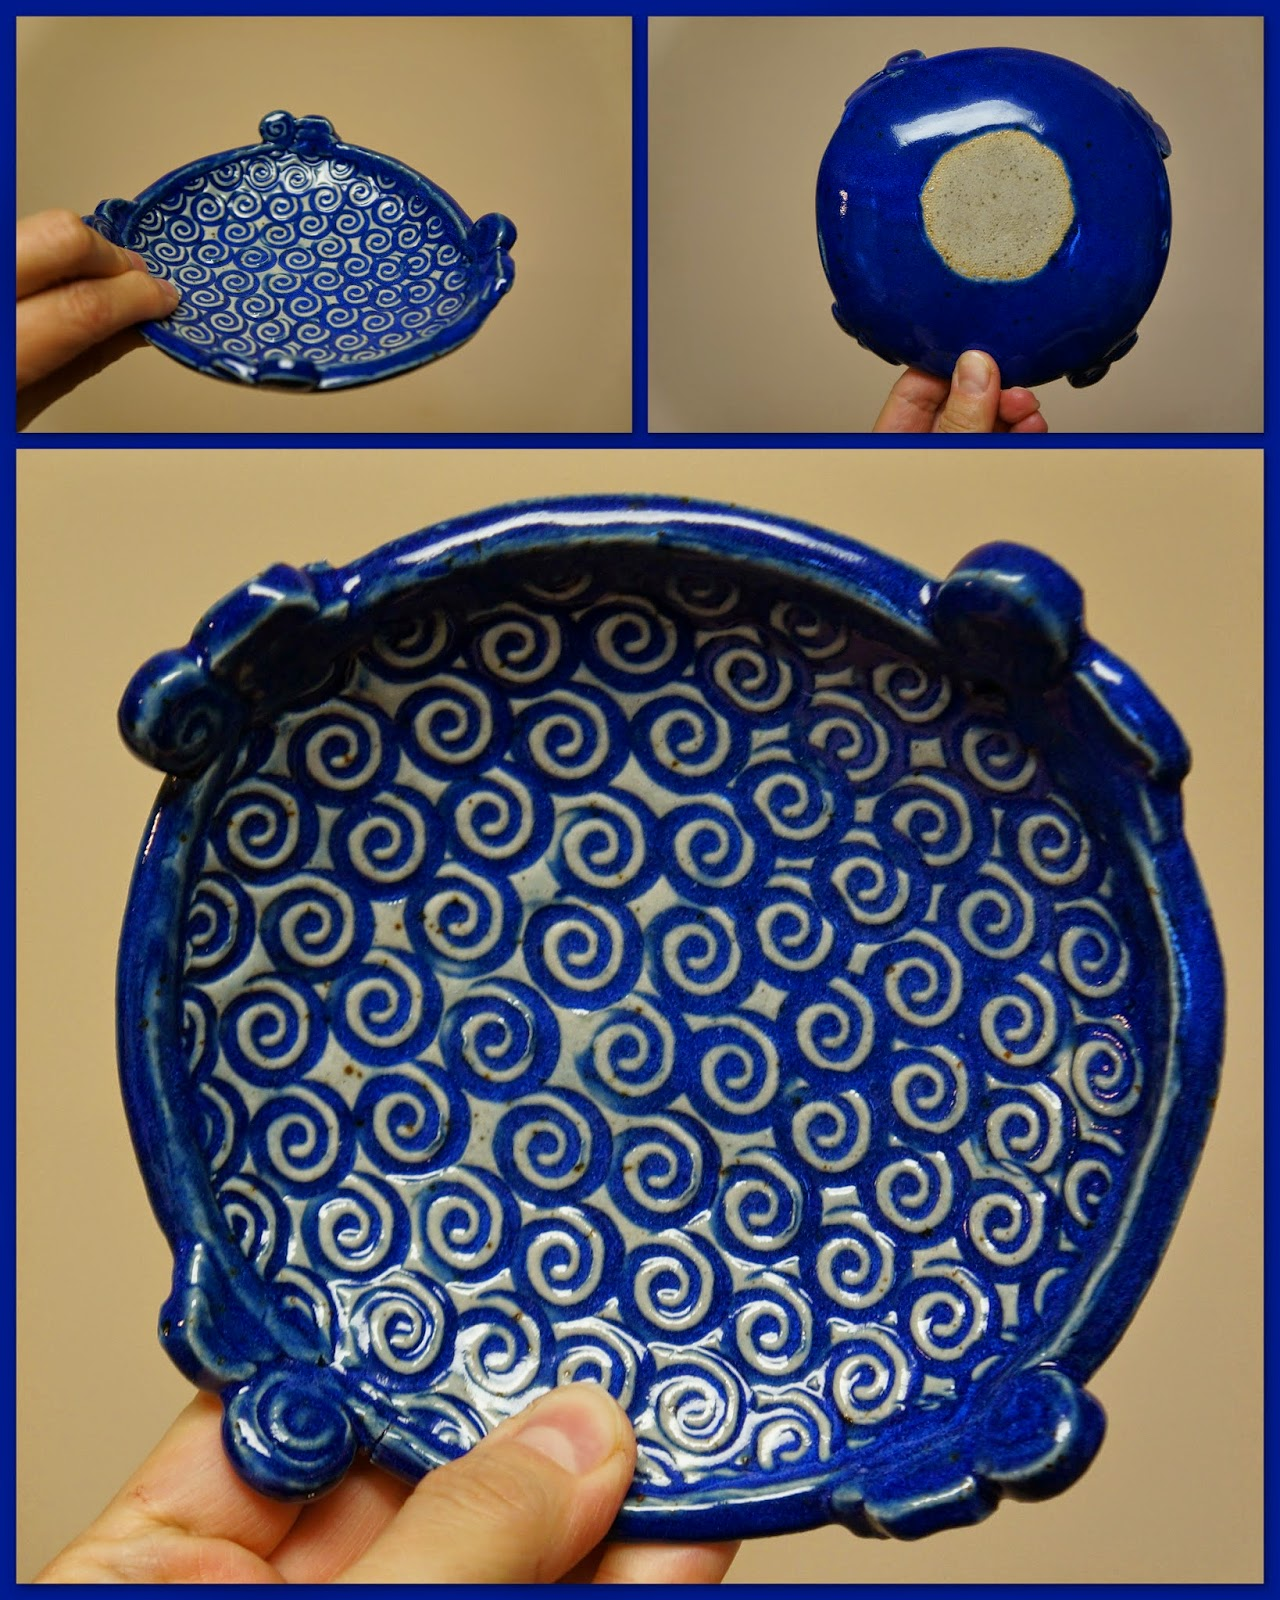 Unique handmade pottery / stoneware dish with swirly design.